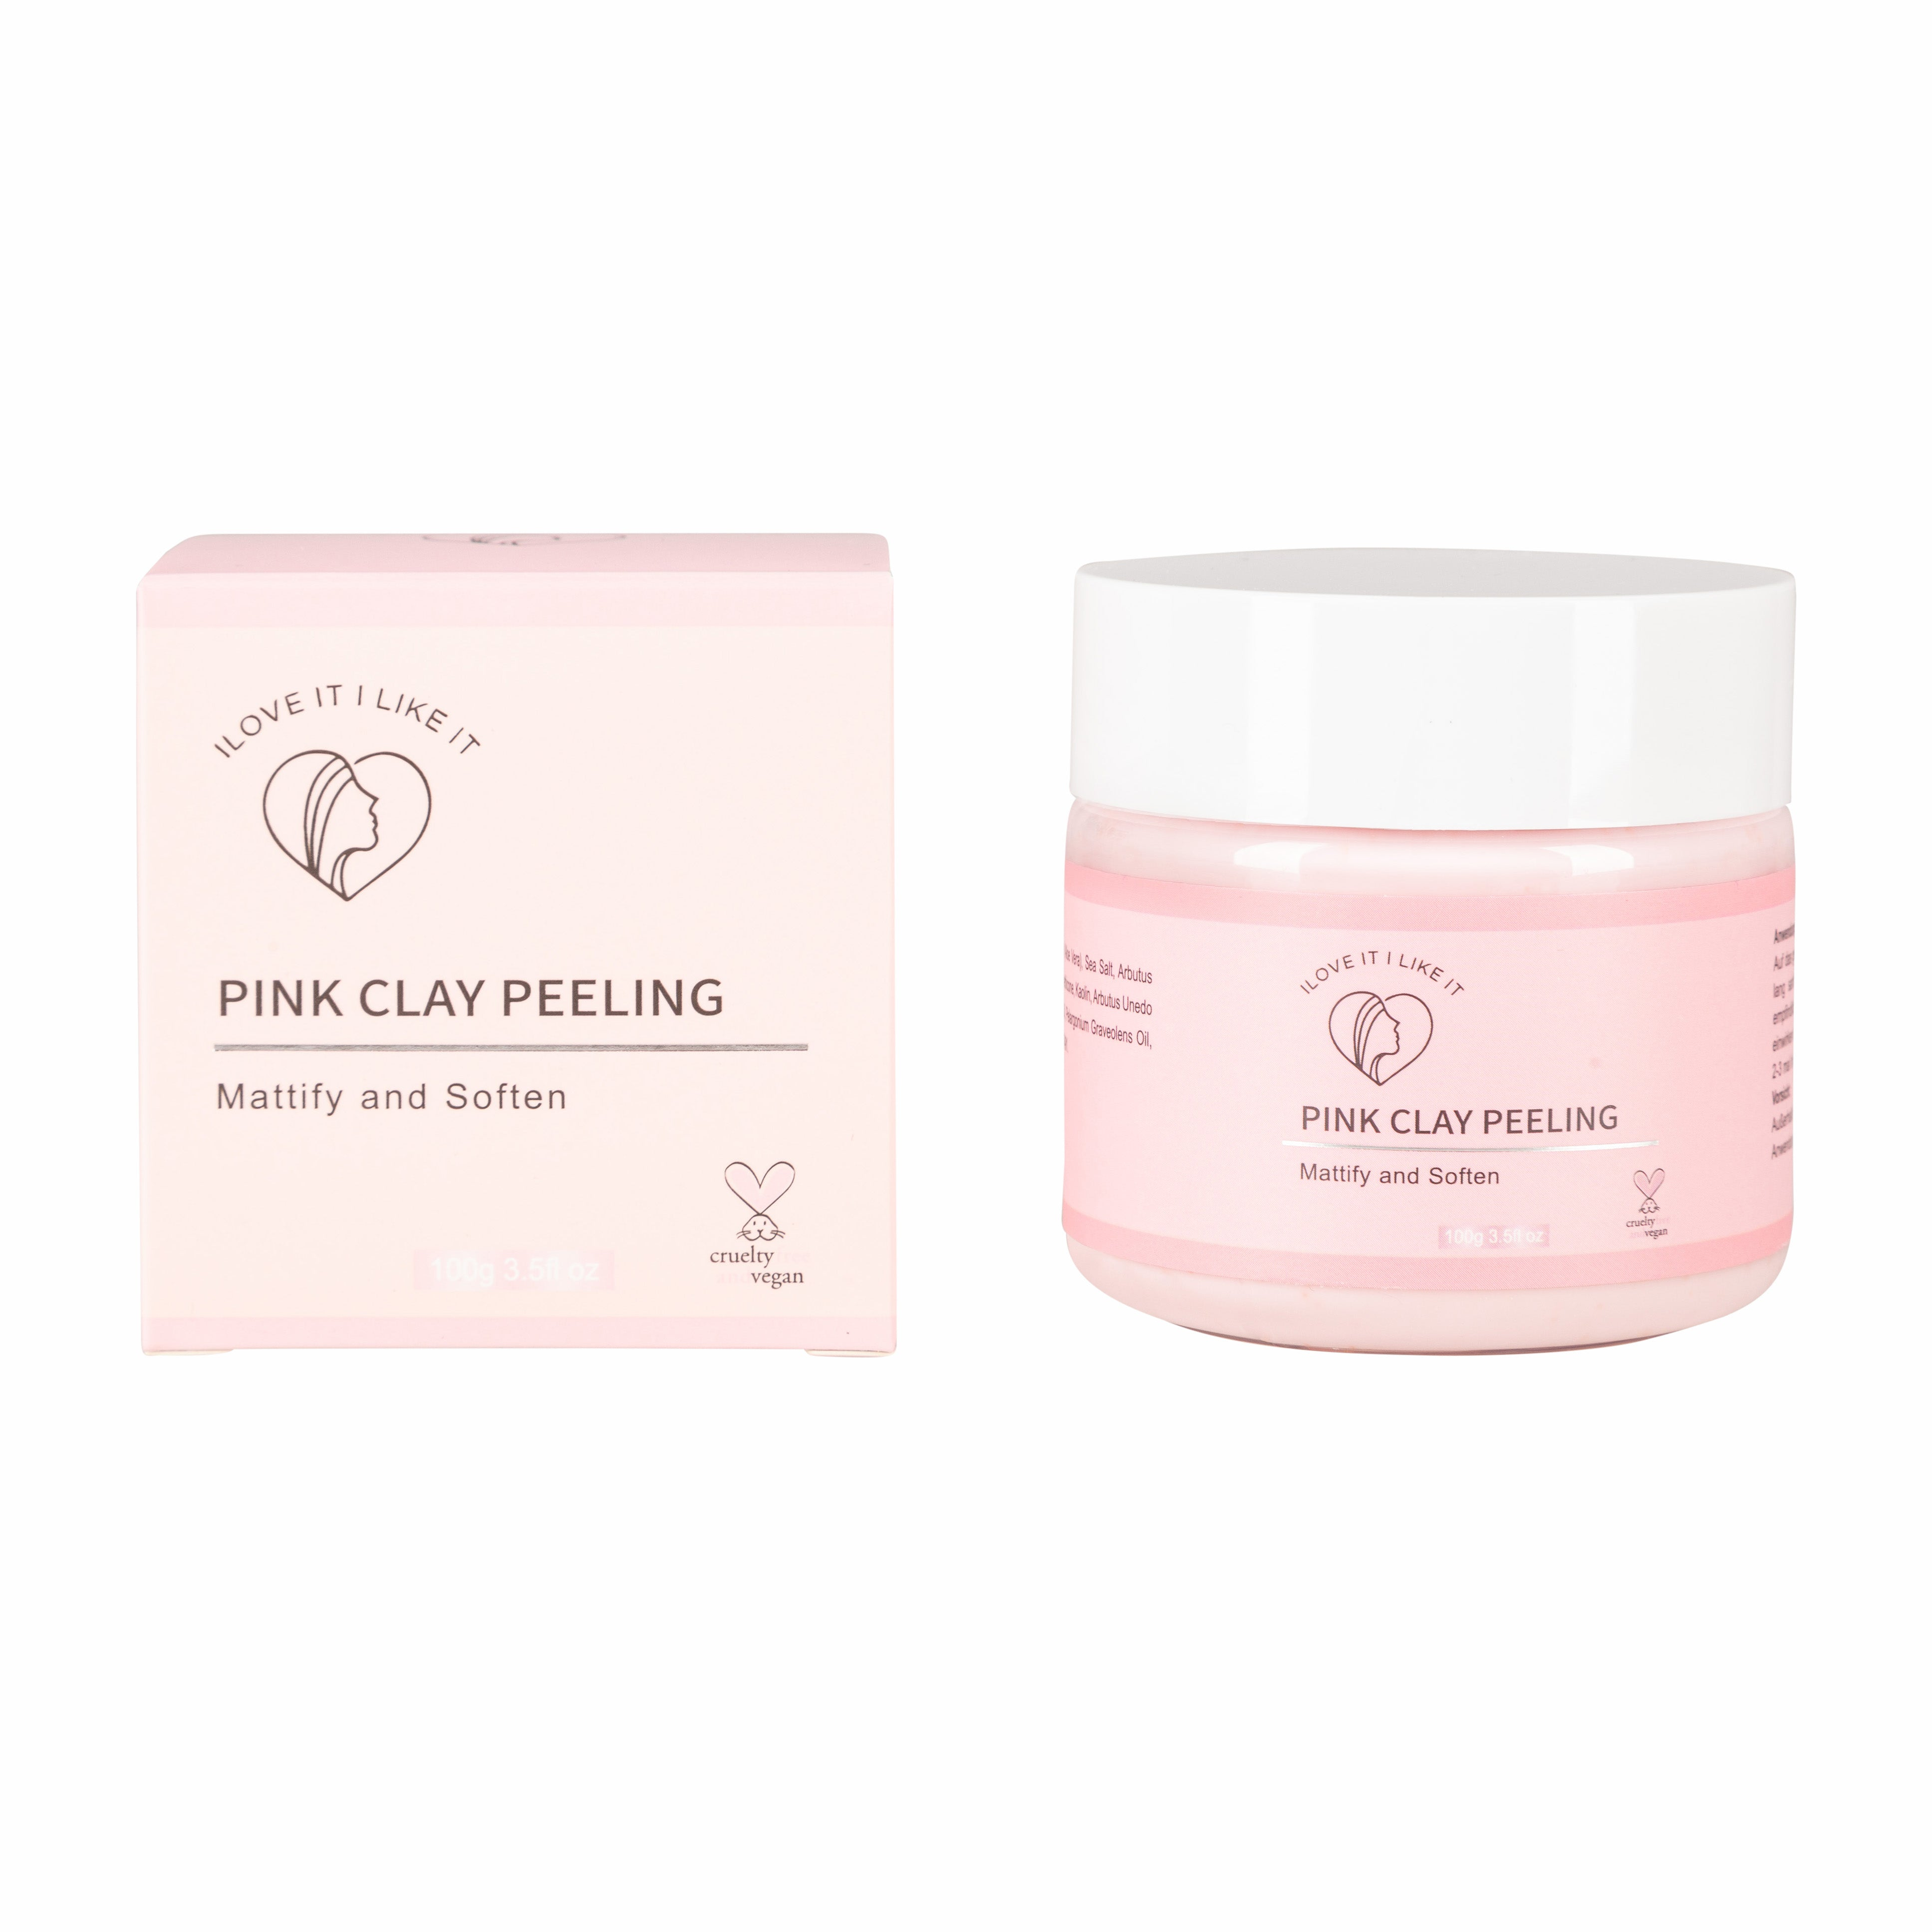 Pink Clay Peeling - I LOVE IT I LIKE IT